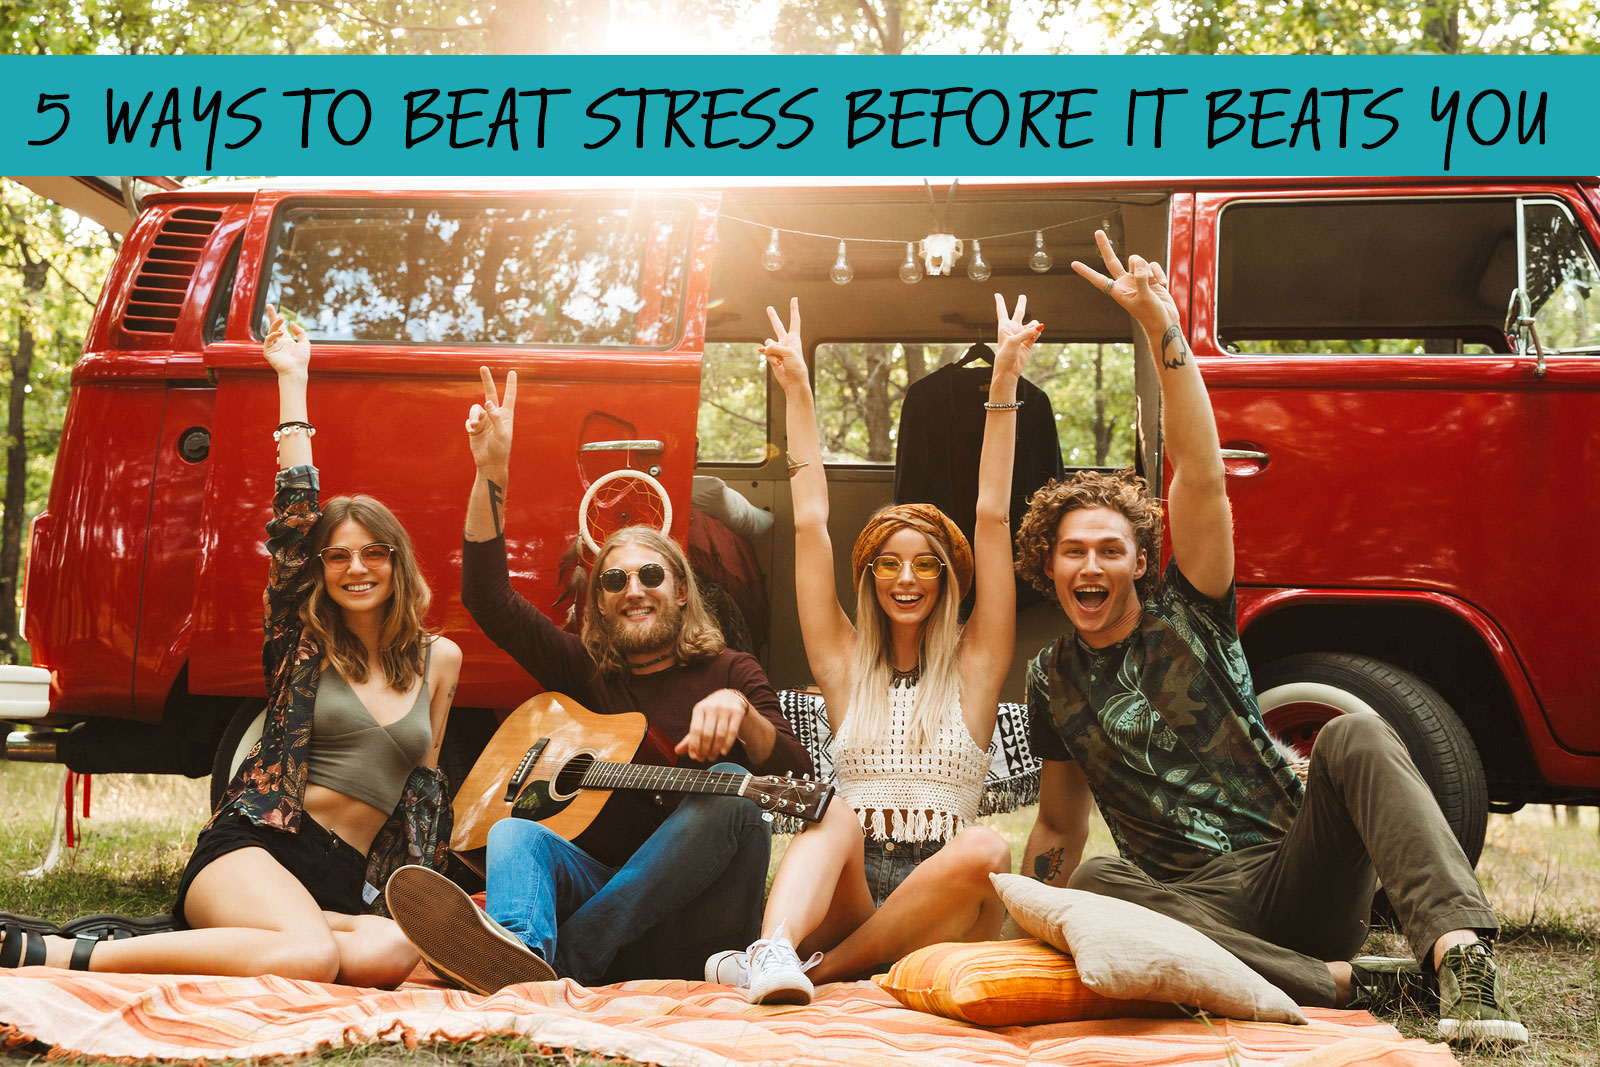 5 WAYS TO BEAT STRESS BEFORE IT BEATS YOU